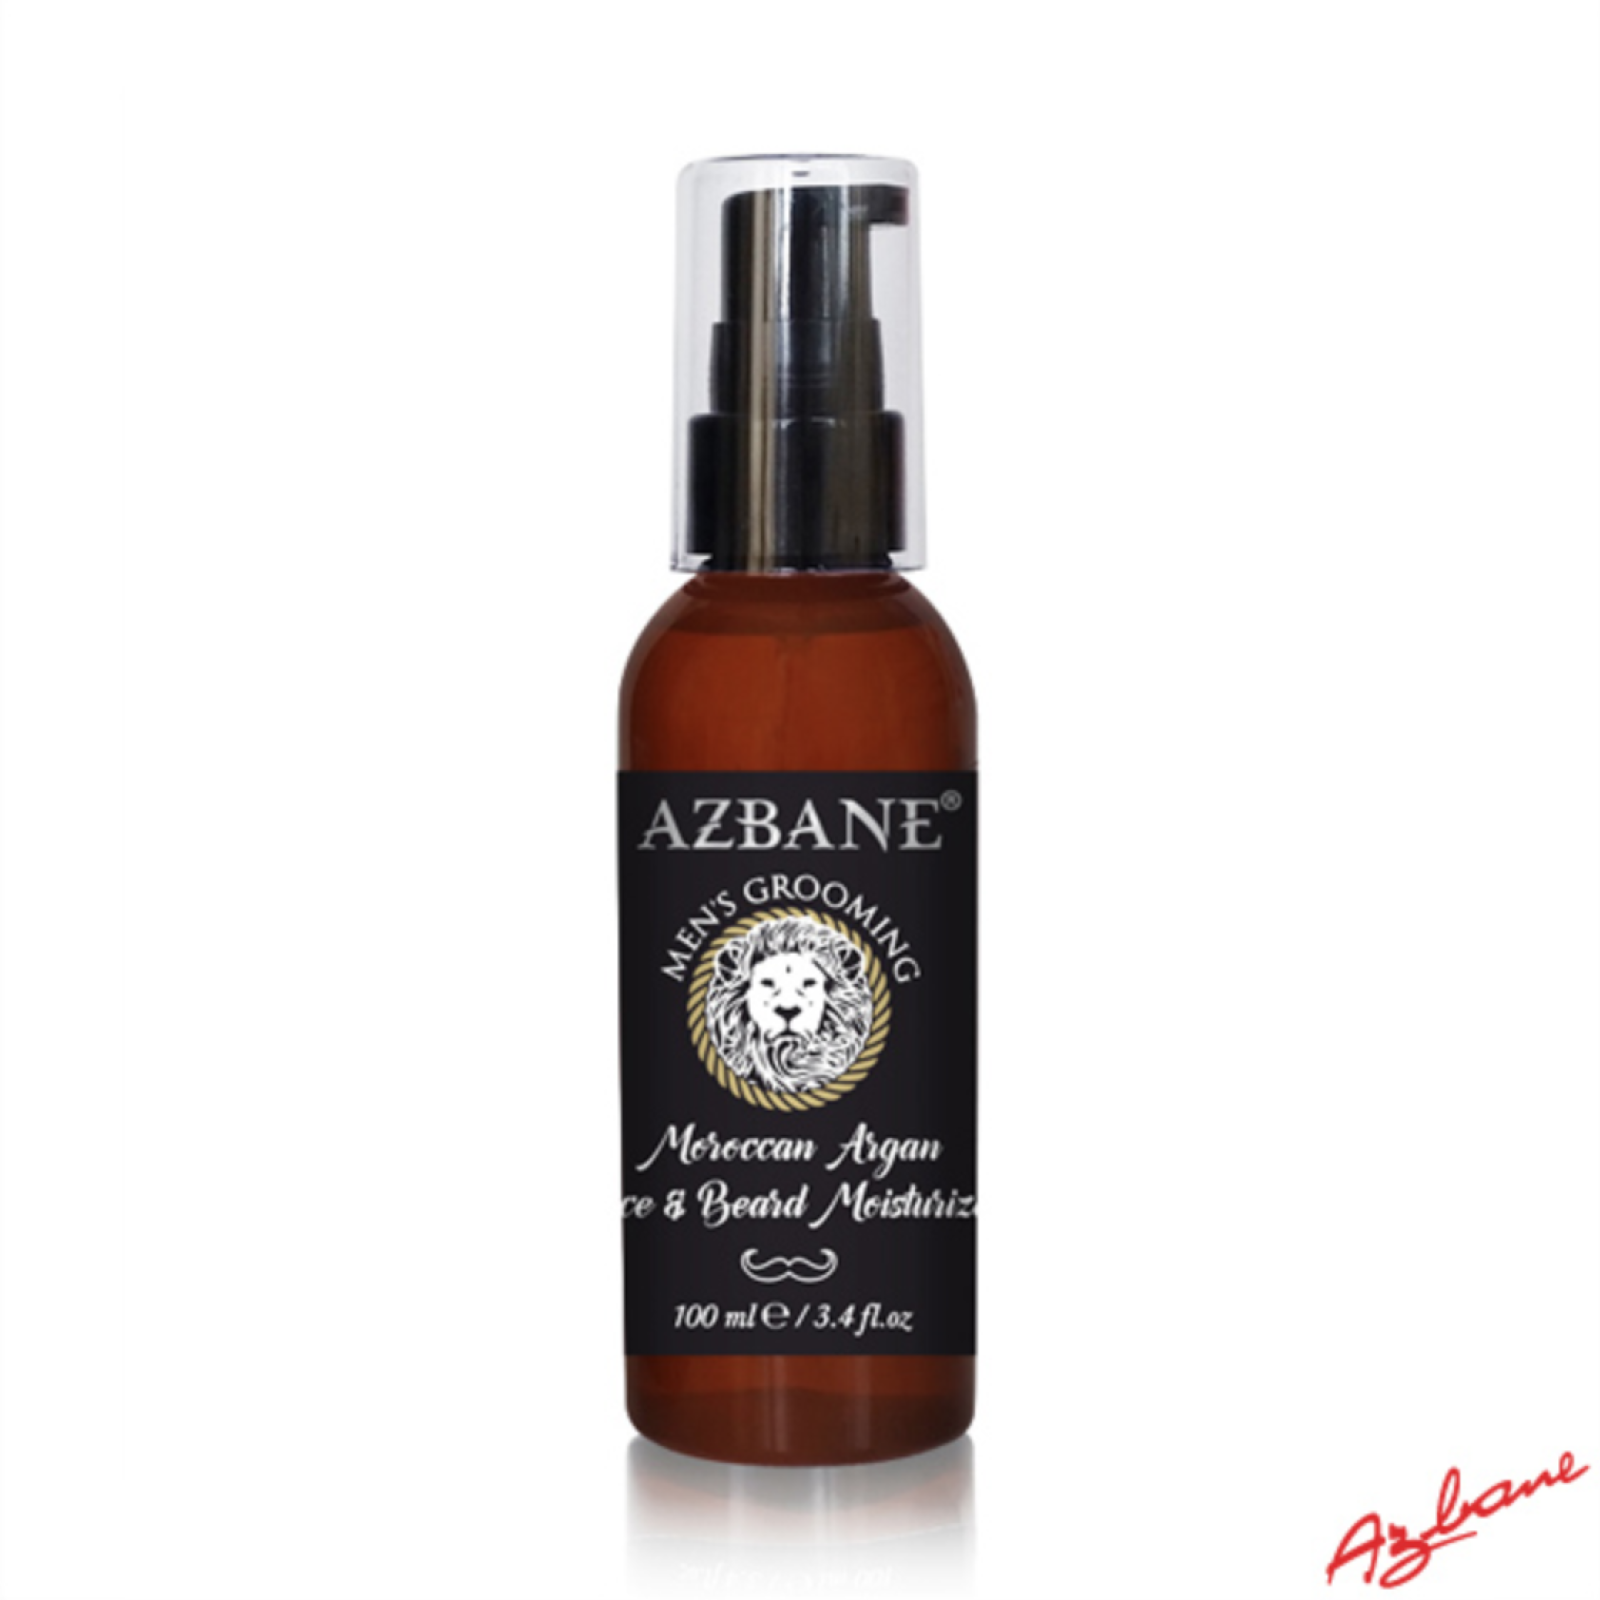 Face & Beard Moisturizer, by AZBANE - Moroccan Brands